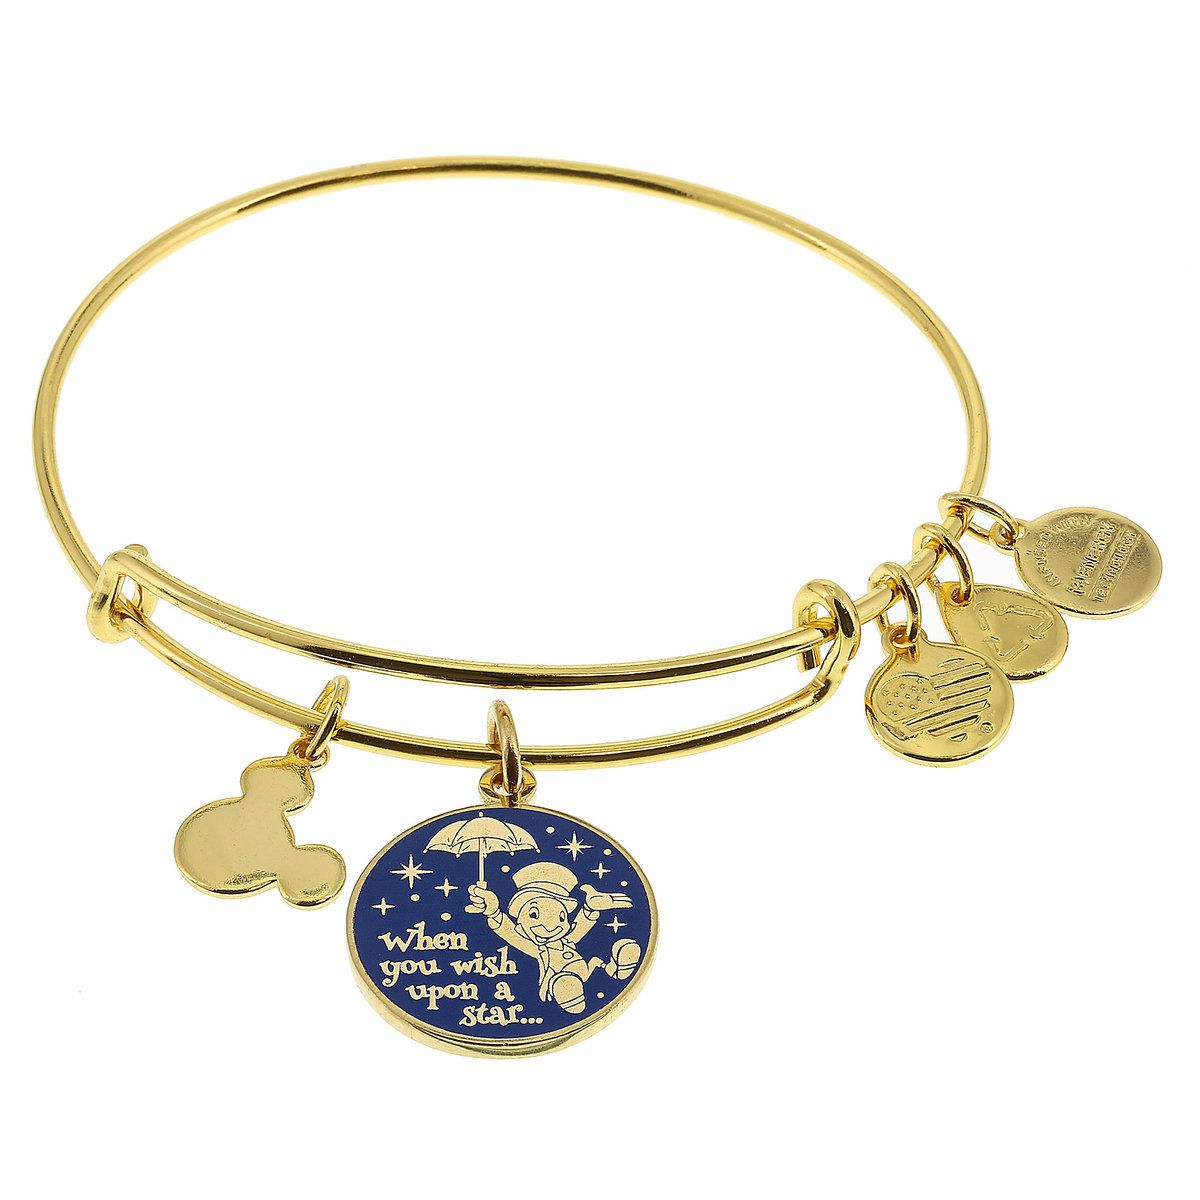 Jiminy Cricket When You Wish Upon A Star Bangle By Alex - Alex and ani cruise ship bangle